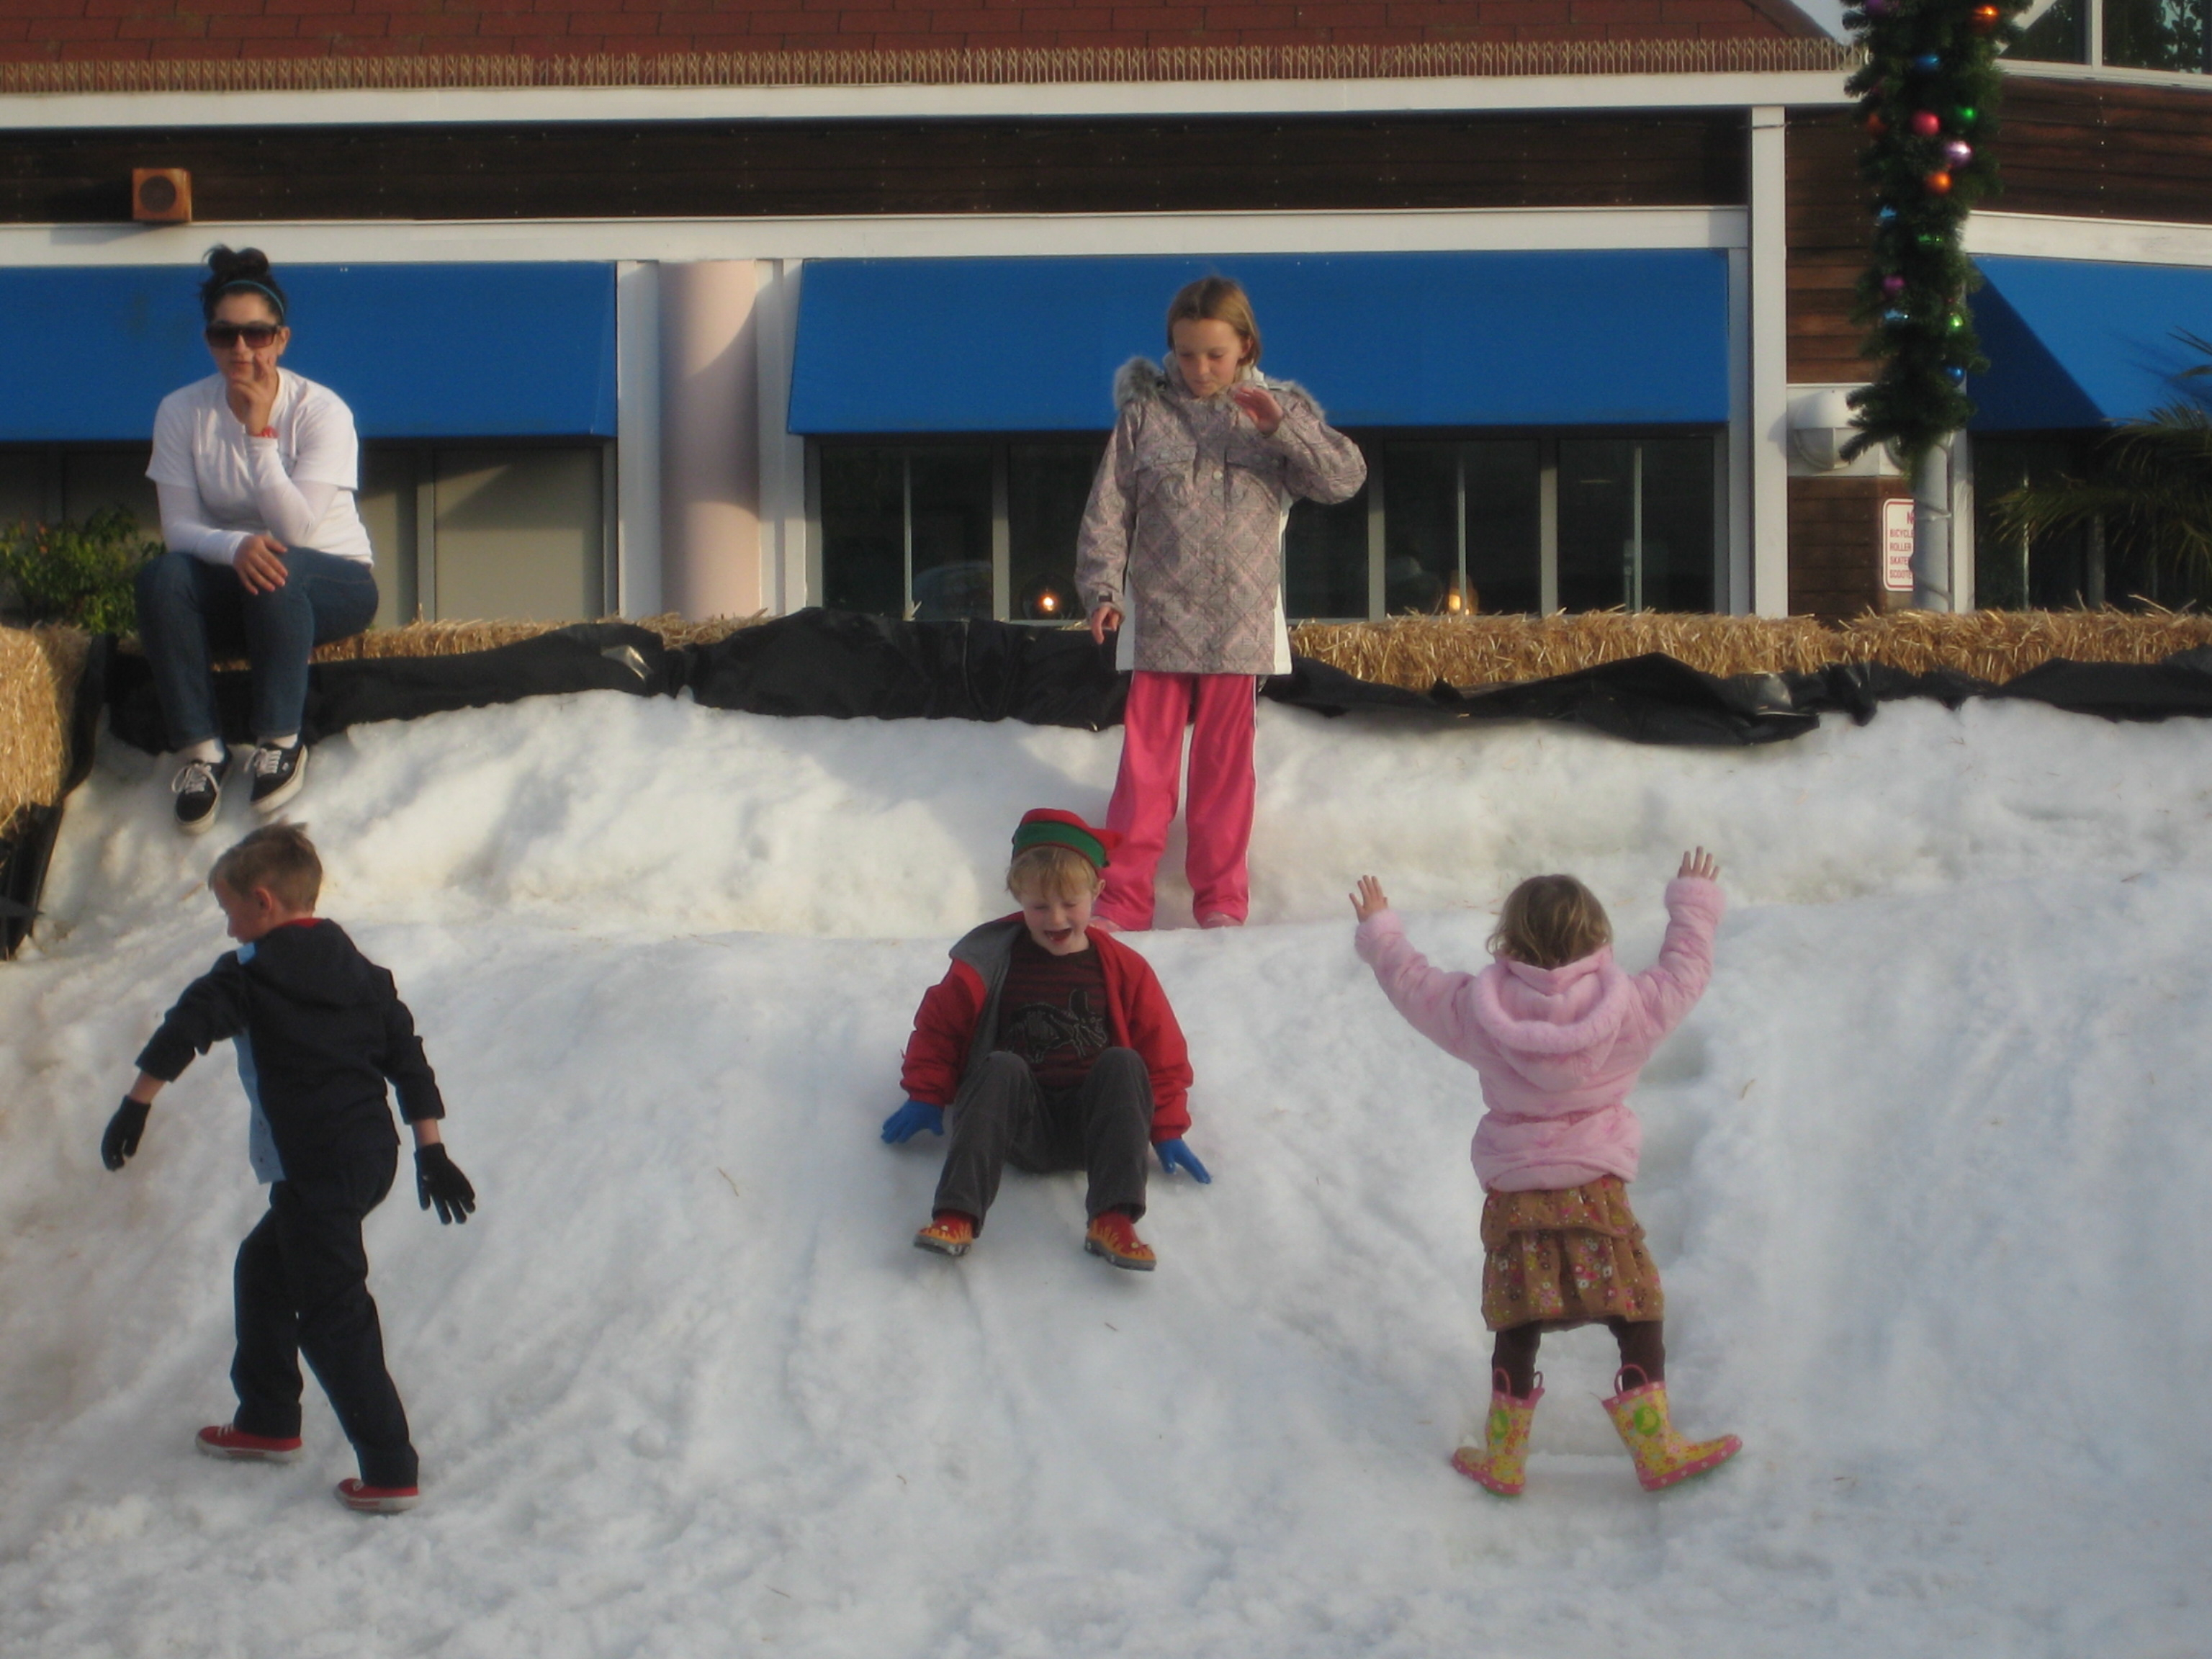 Snow Mountain fun at the Coronado Ferry Landing!